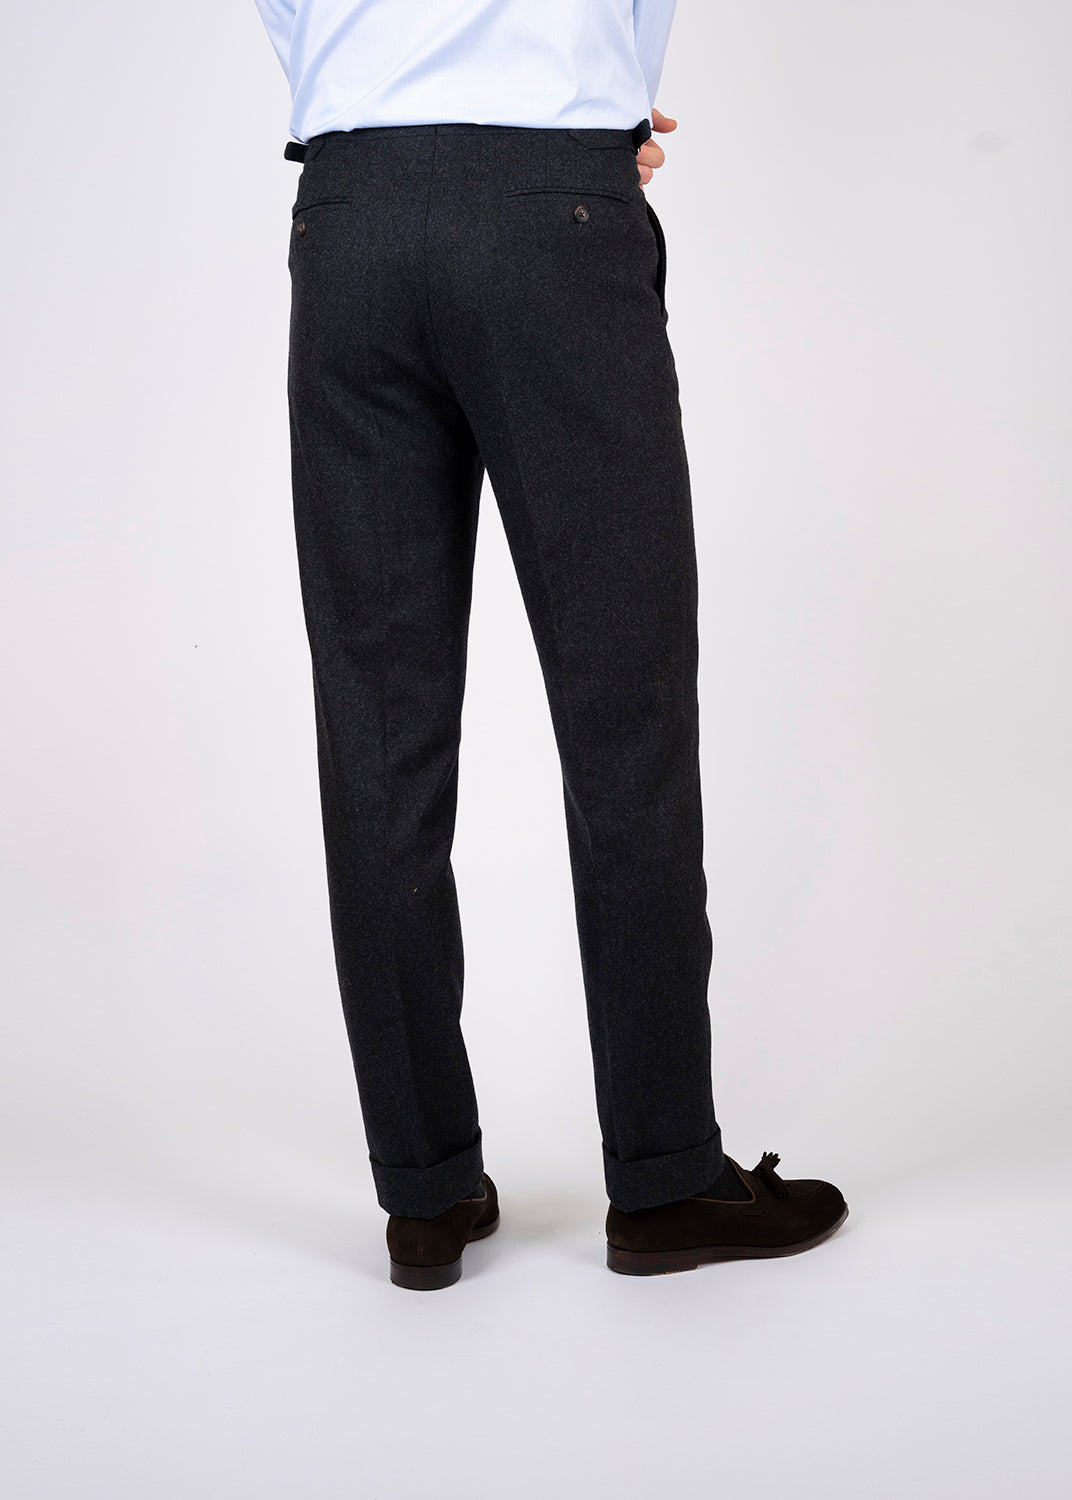 Classic flannel trousers